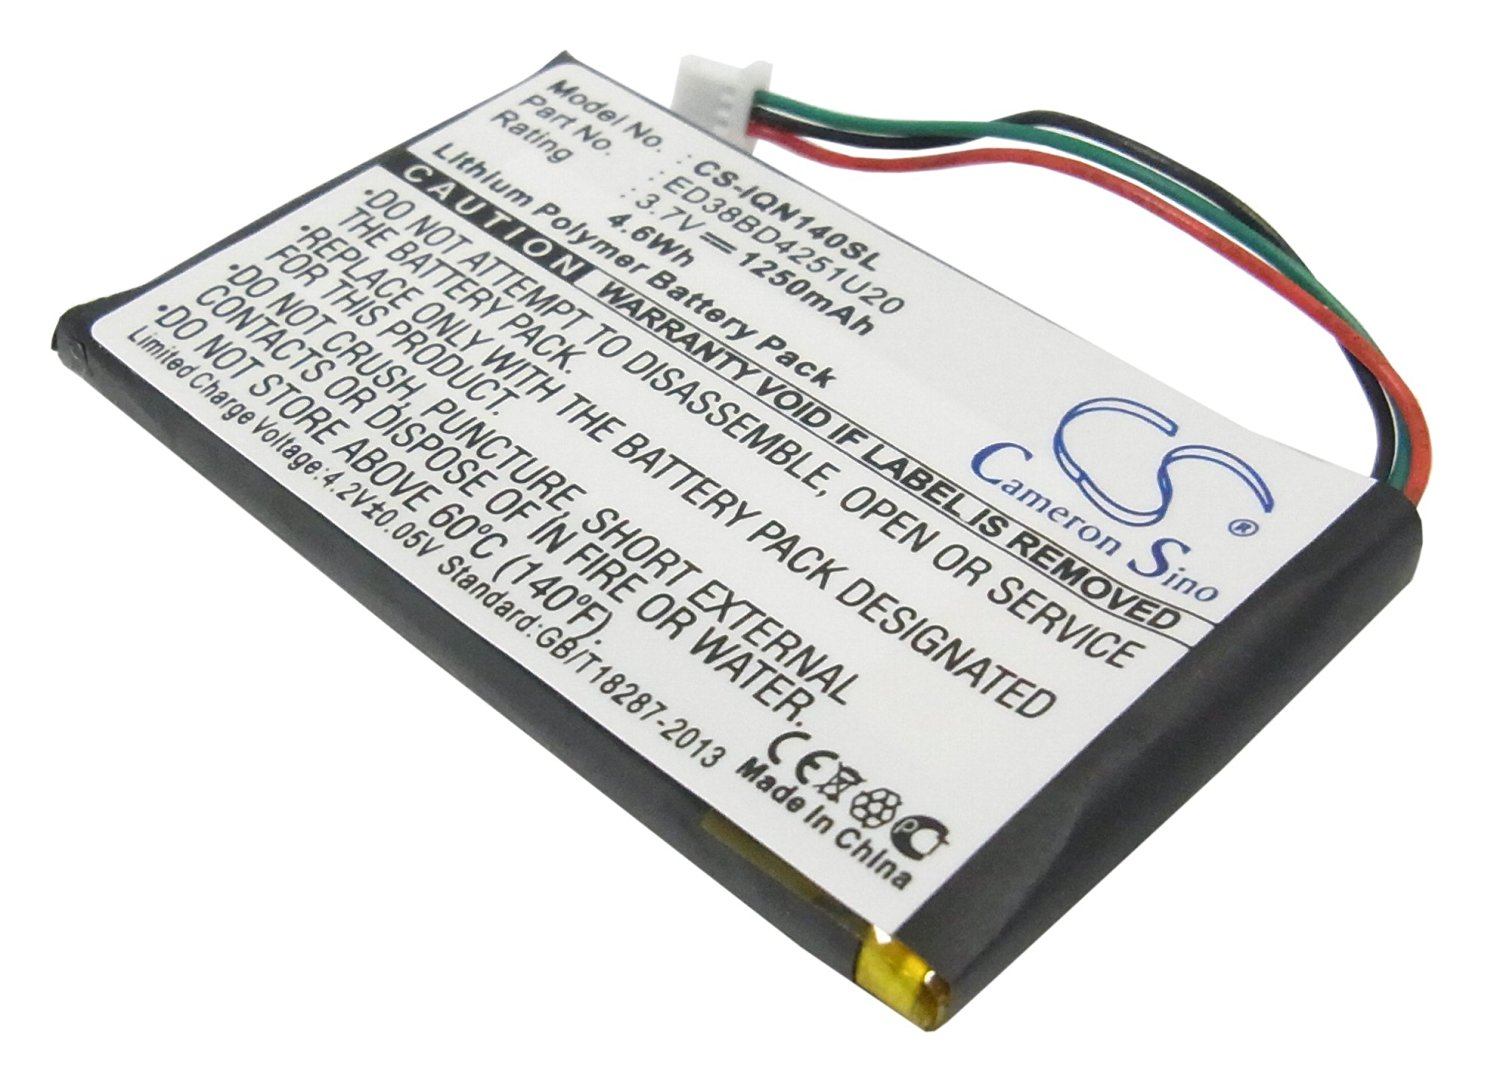 VINTRONS Rechargeable Battery 1250mAh For Garmin Nuvi 1450, Nuvi 1400, Nuvi 1490T